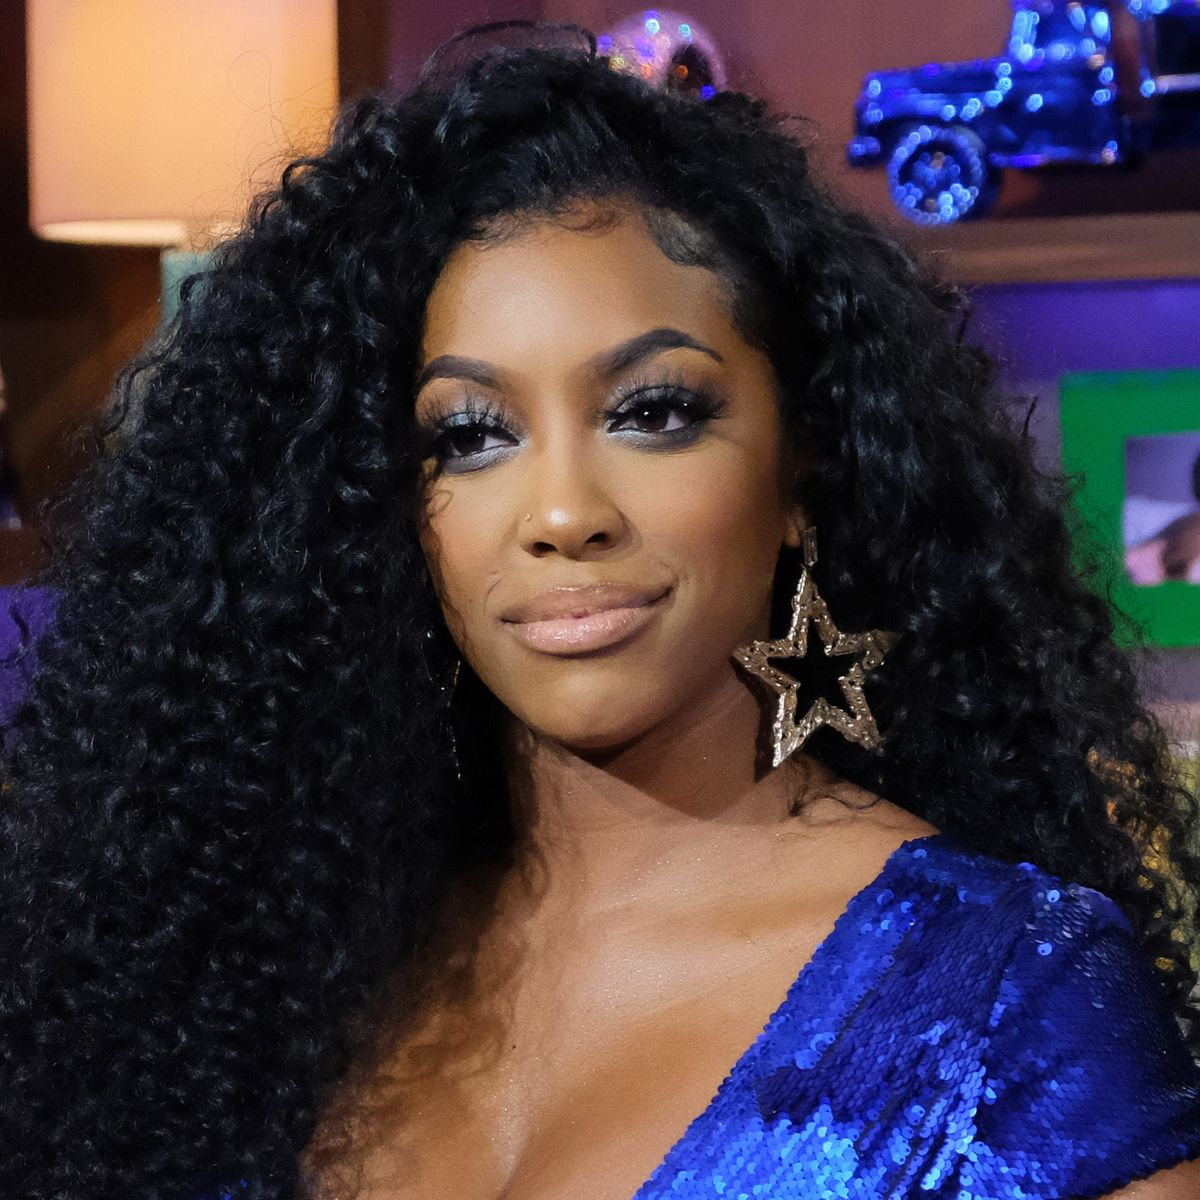 Porsha Williams Is Motivating Fans With These Exercises – See Her Video